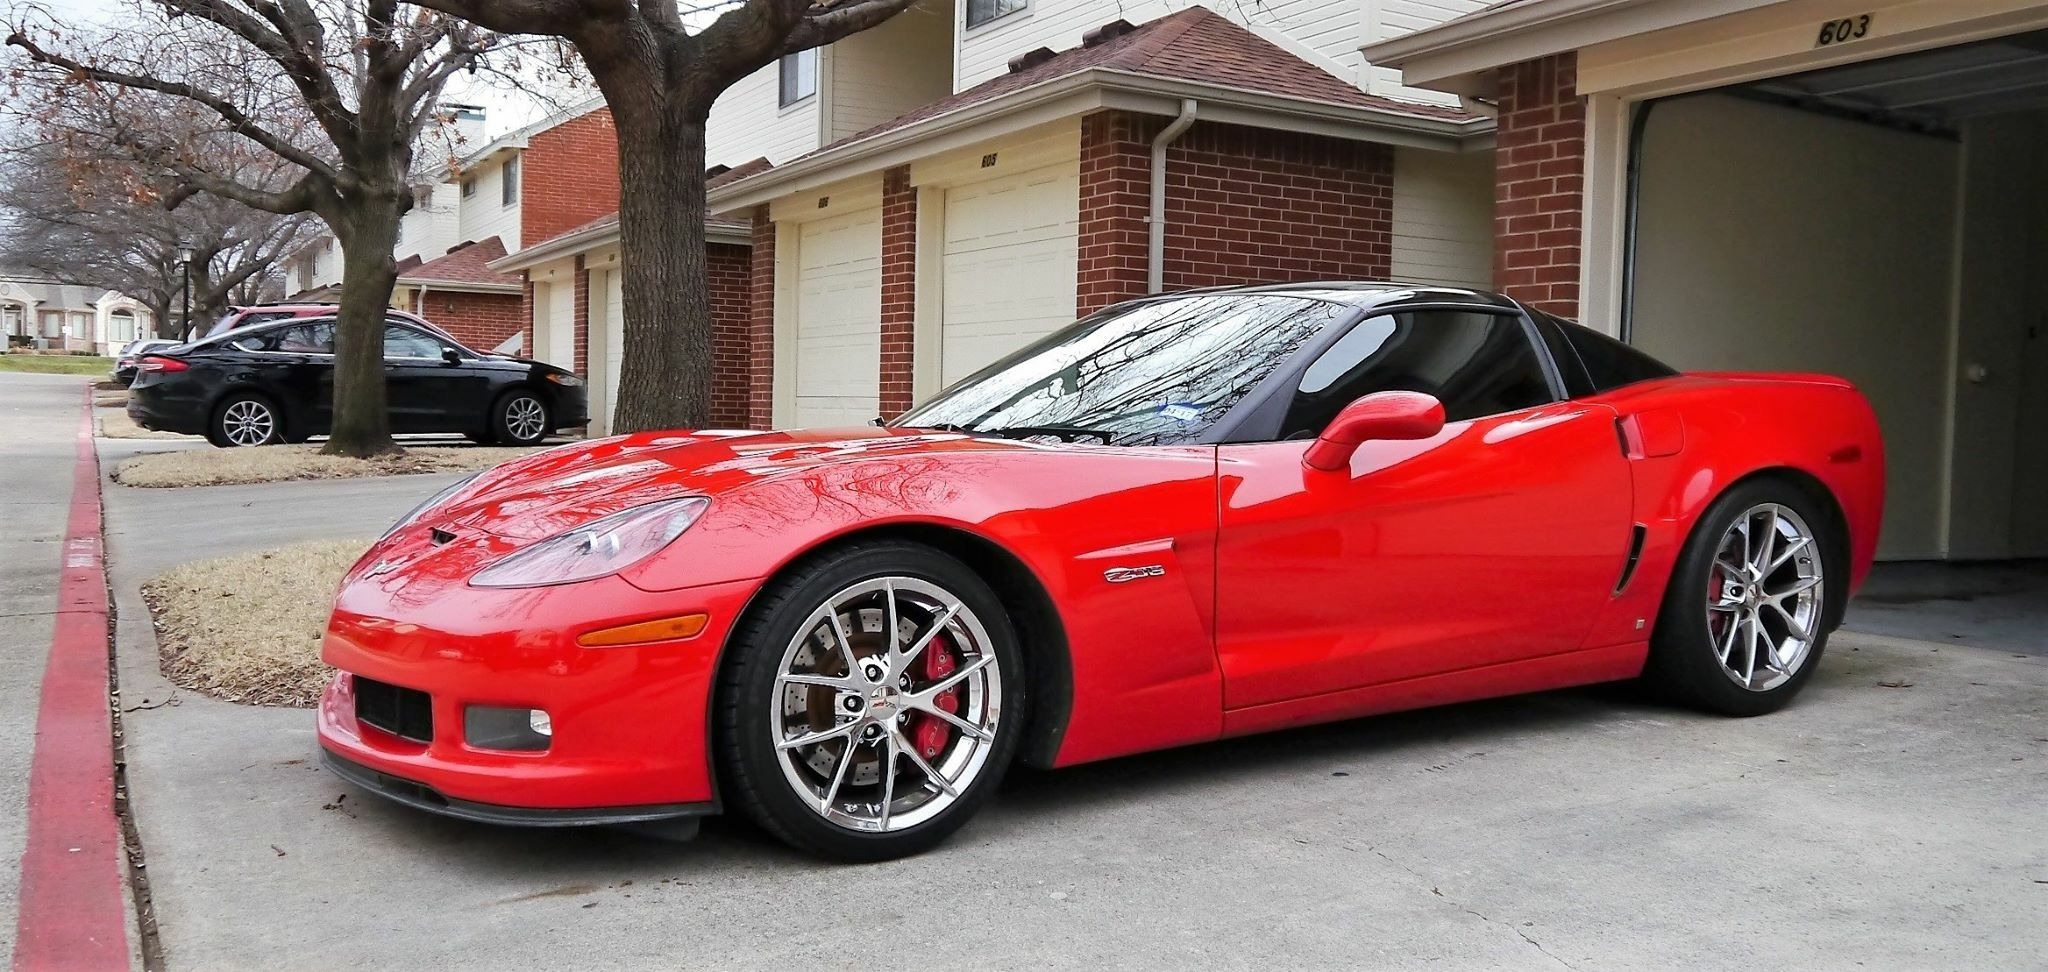 C6 Z06 Chevrolet Corvette With An Avery Gloss Black Roof By Sharp